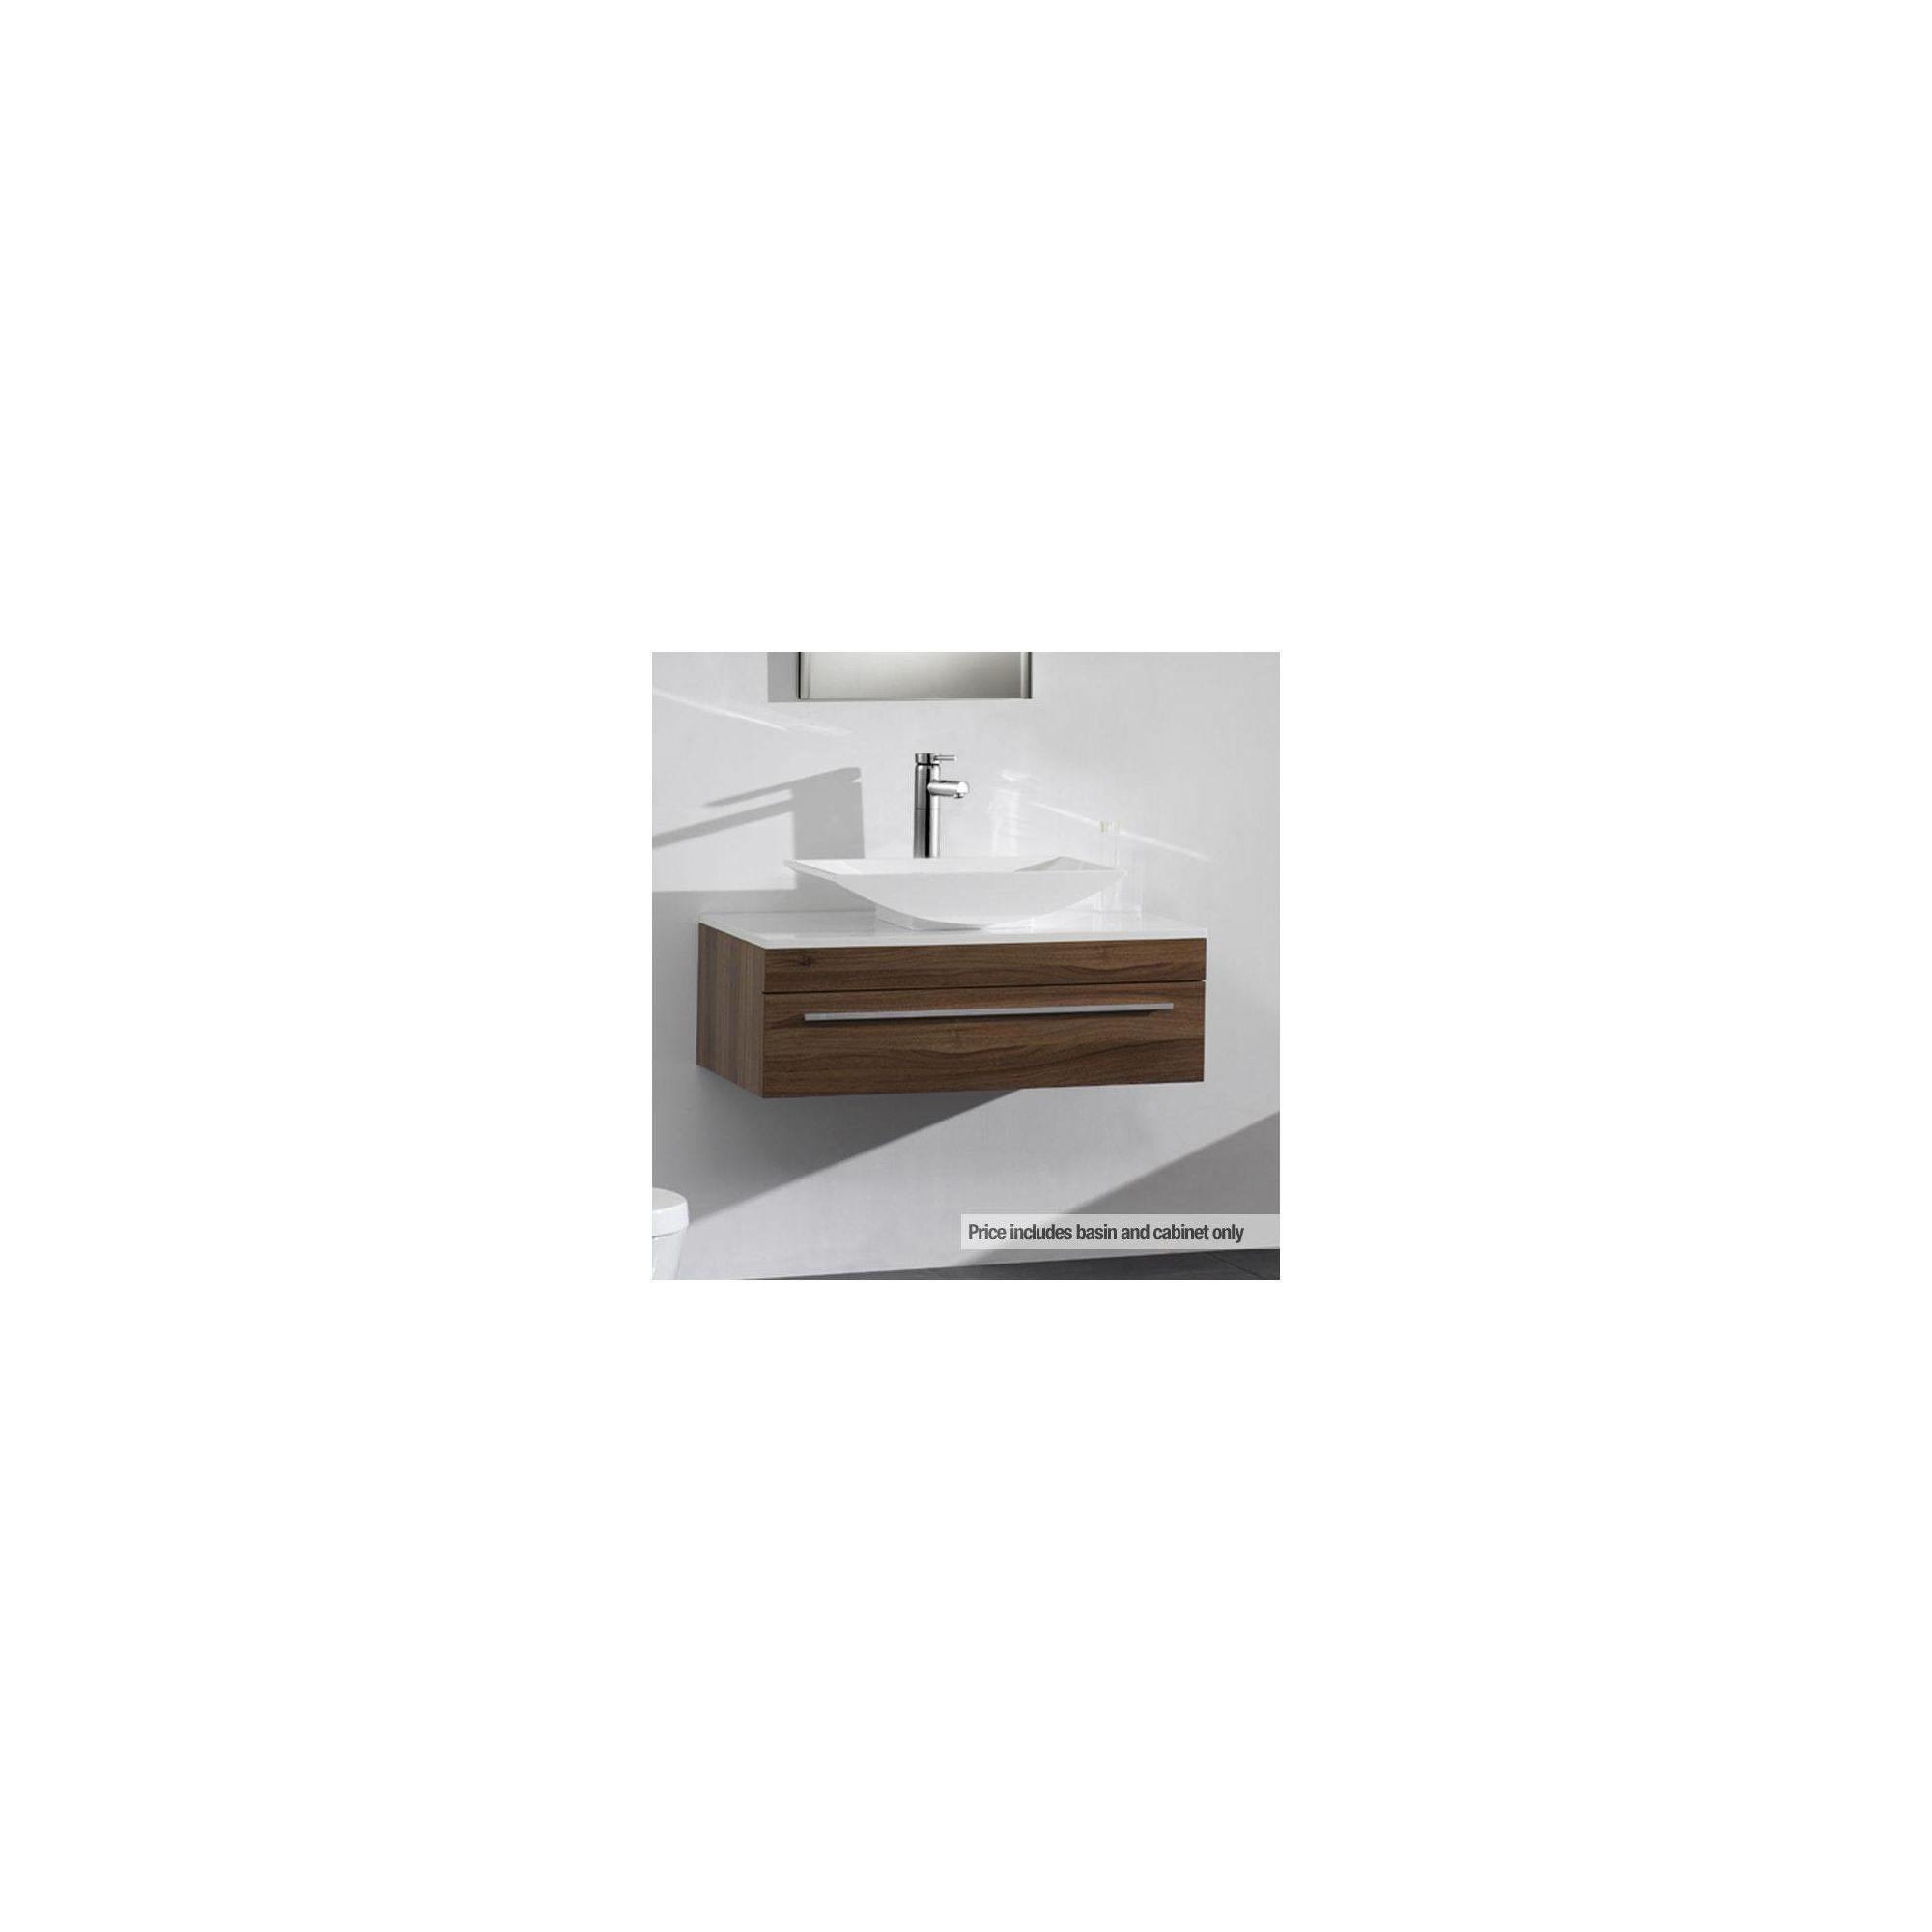 Ultra Equity Walnut Wall Mounted Unit with Basin